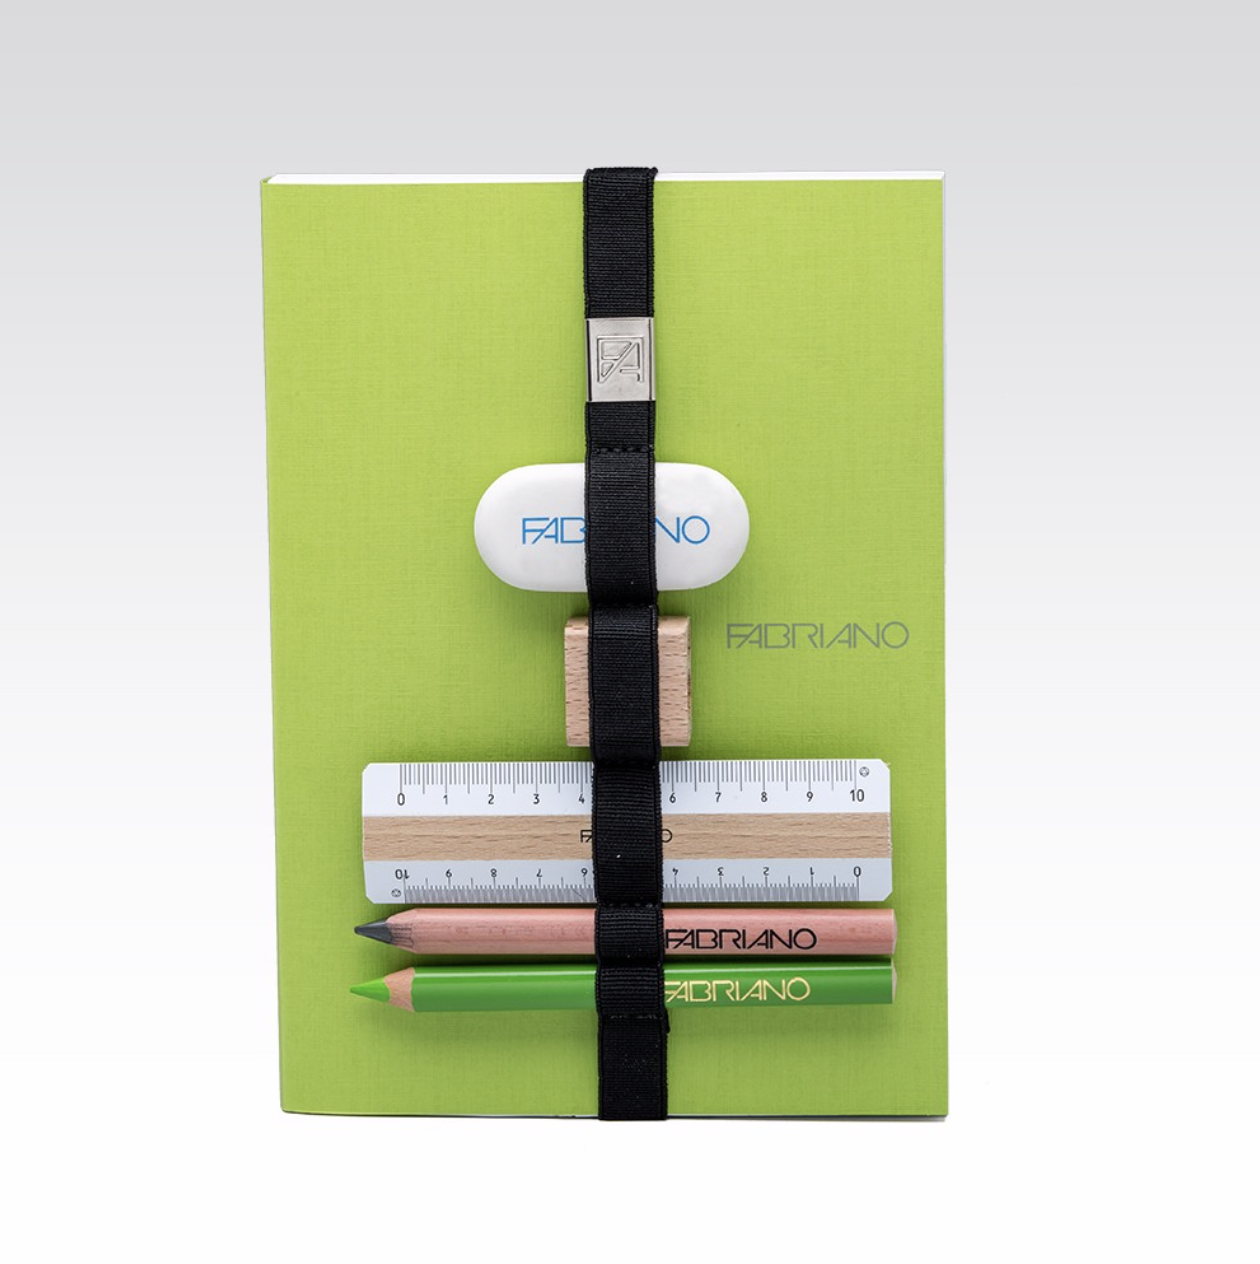 Fabriano Elastico Stationary Set